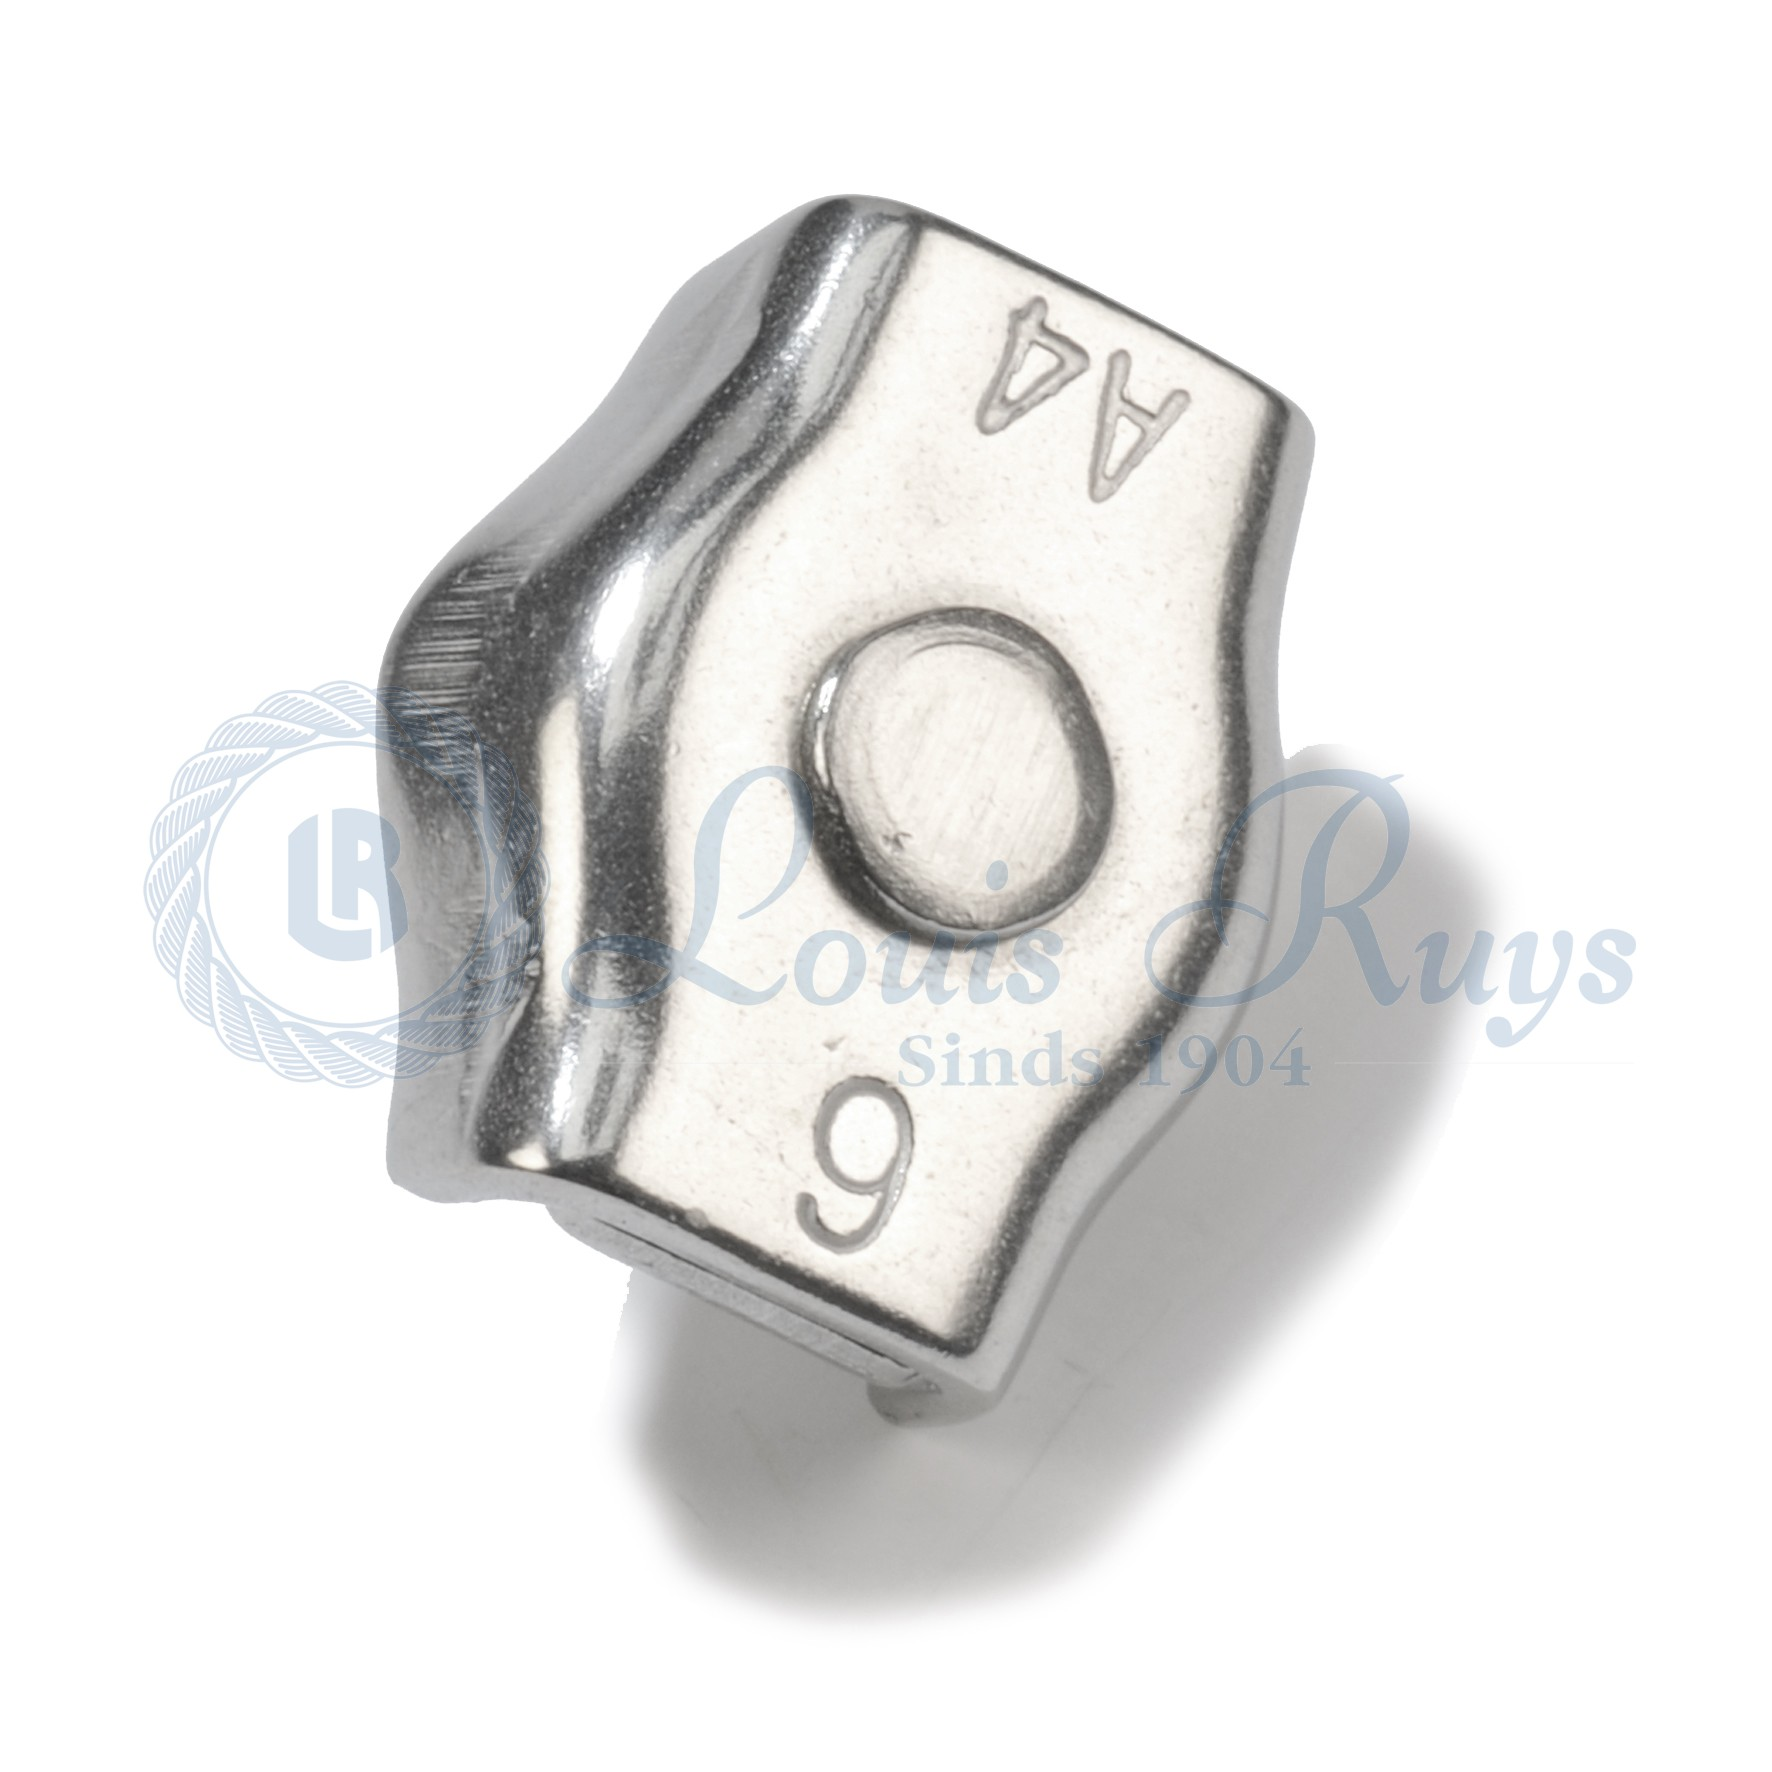 Stainless single wire rope clips - Louis Ruys